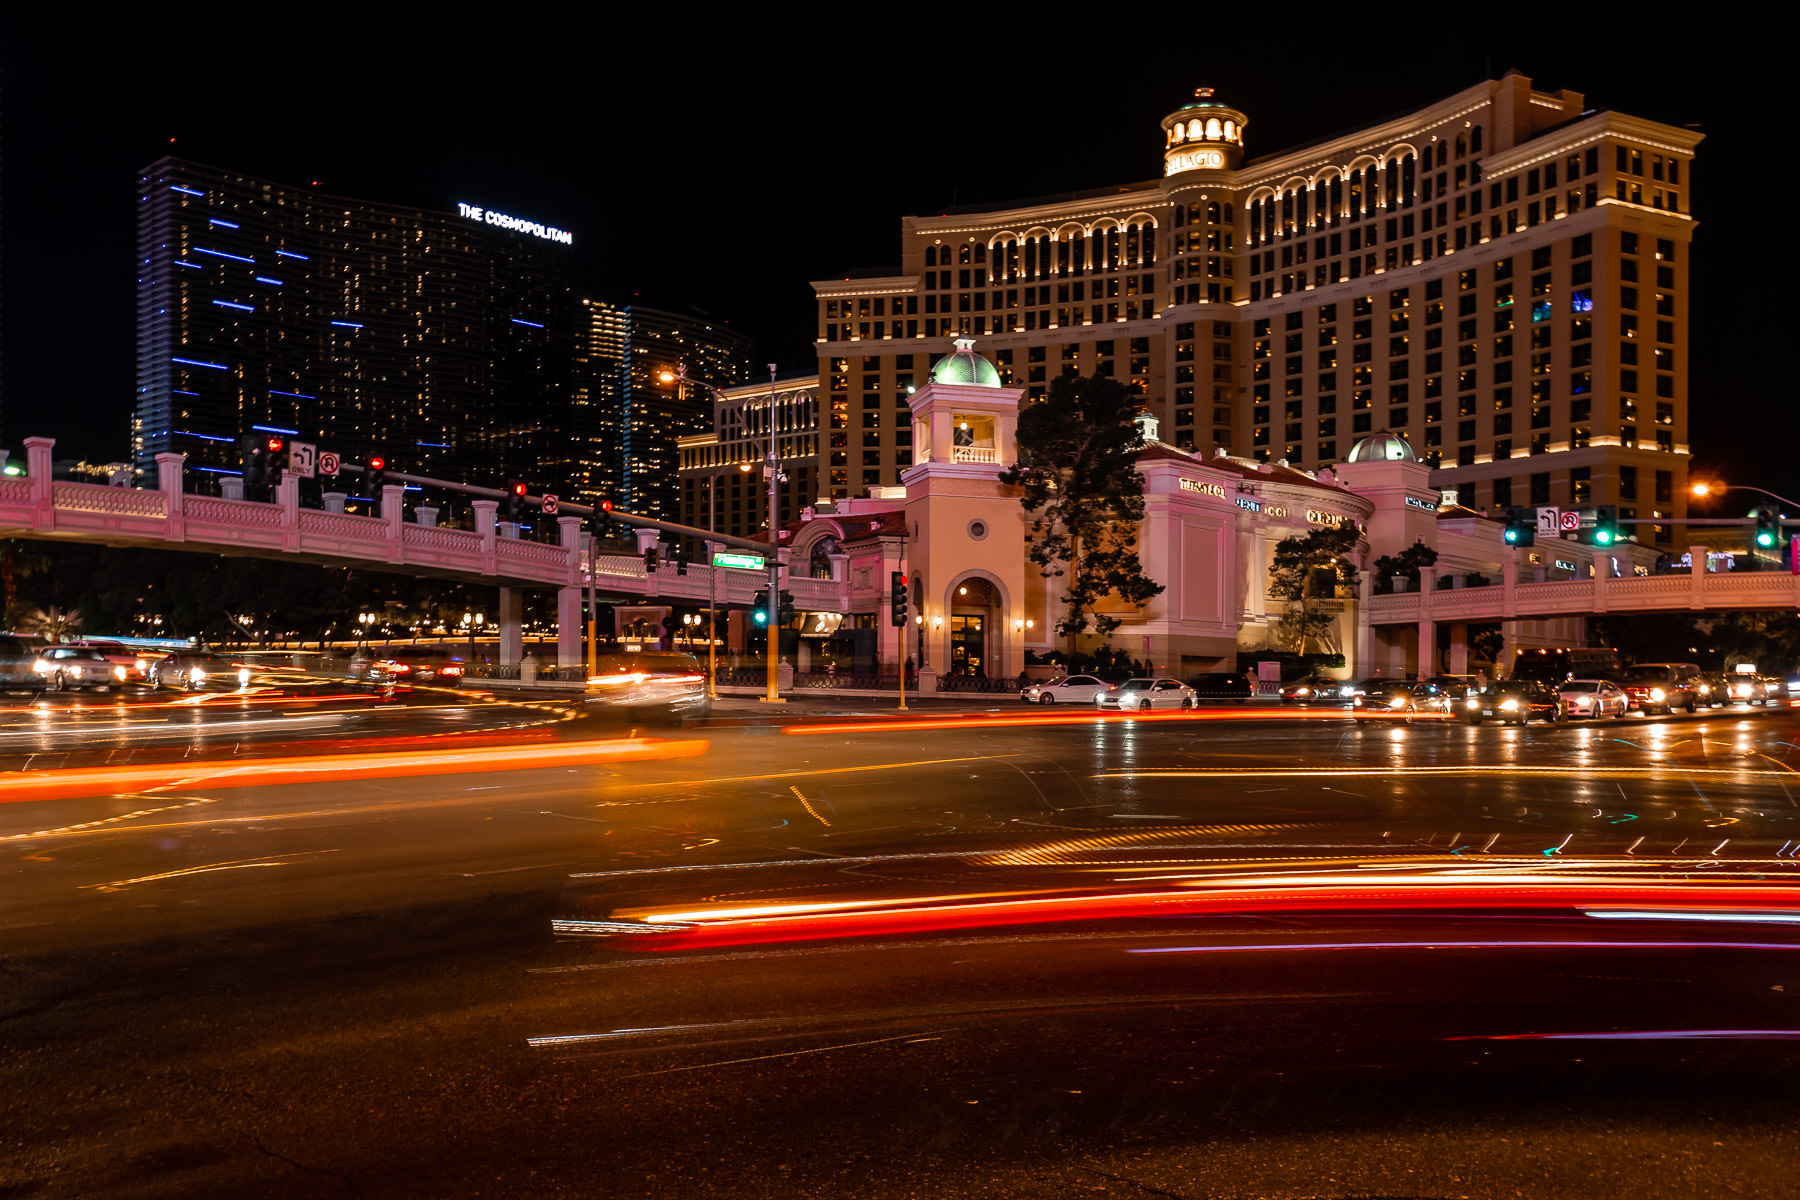 A long exposure shot of the intersection of Flamingo Road and The Strip, Las Vegas.